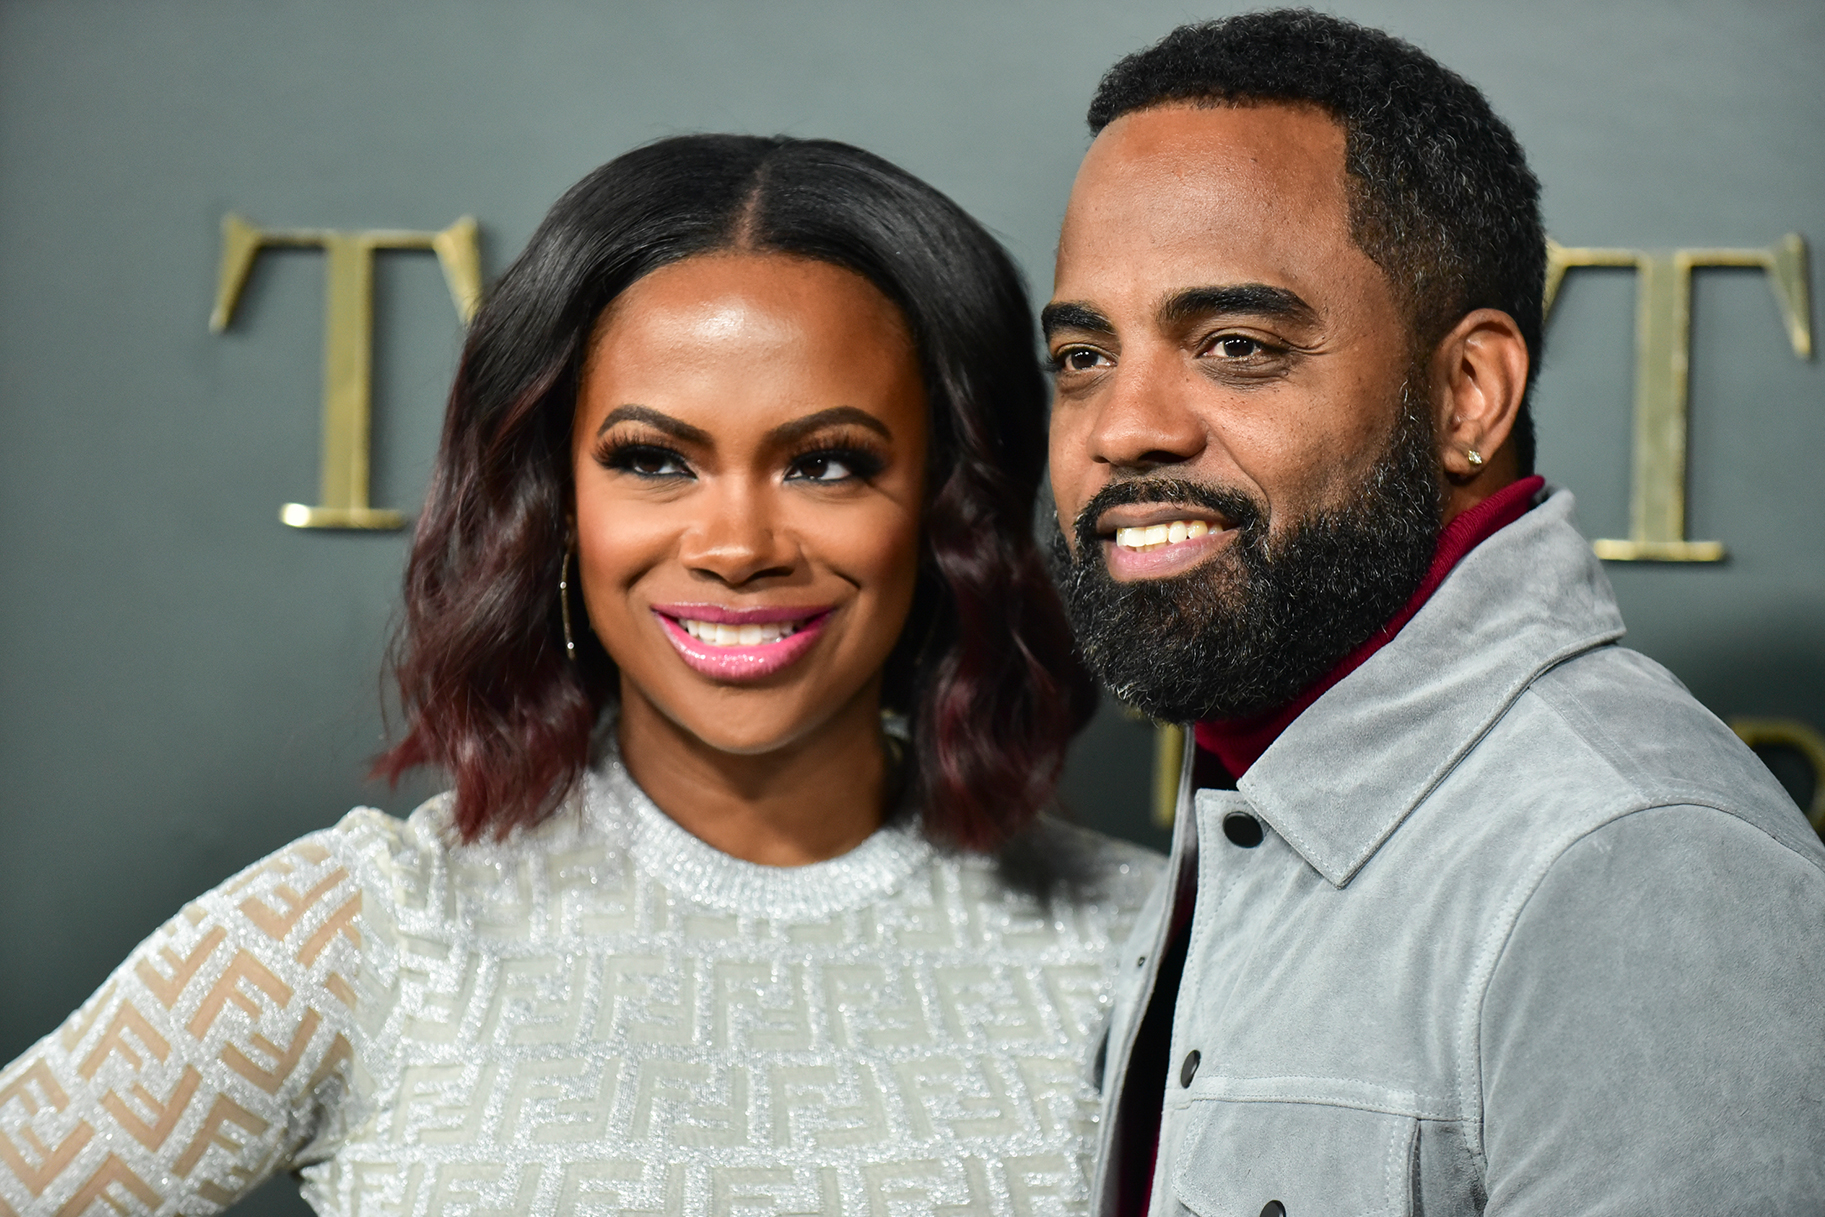 kandi-burruss-shares-a-racy-video-ahead-of-valentines-day-check-her-out-dropping-her-clothes